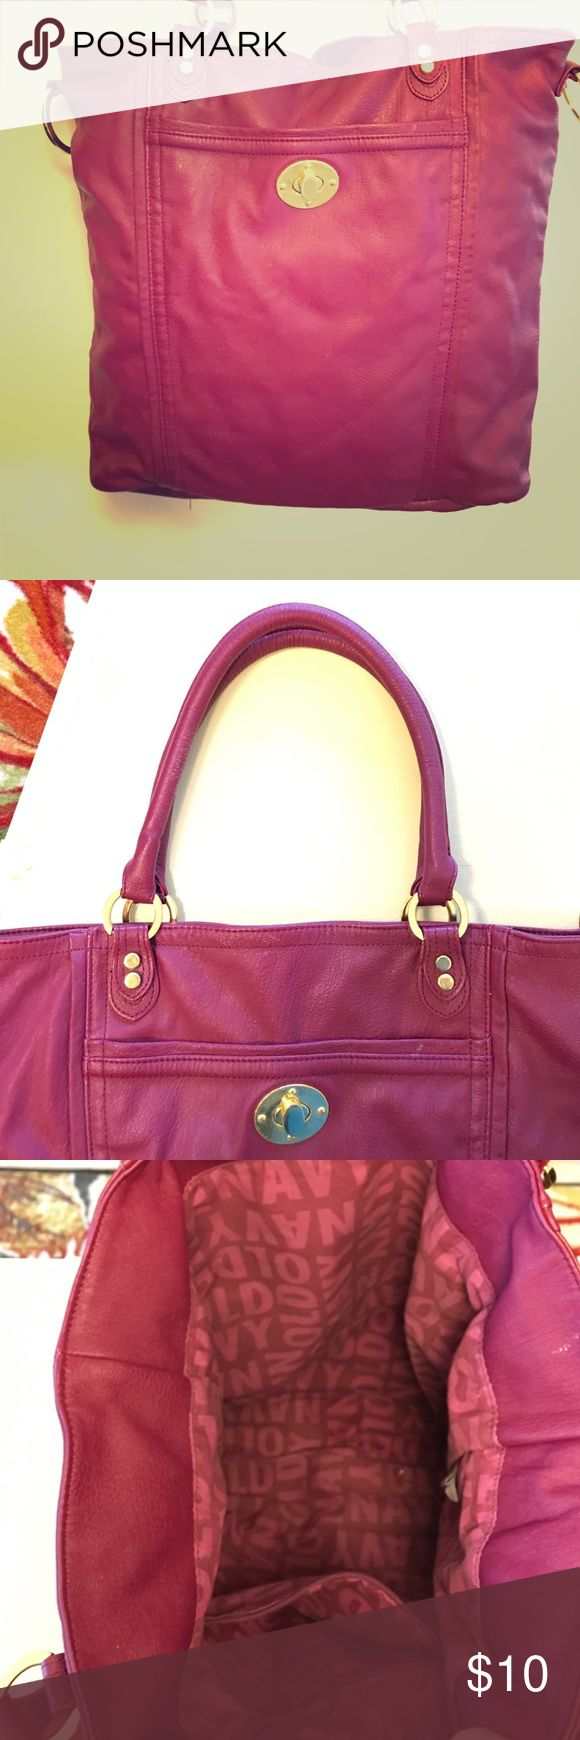 Purple Old Navy Purse Purple Old Navy Purse with short handles. Magnetic clasp to close Purse. One zippered pocket on the inside. Magnetic clasp on the front is broken on the inside but you can't tell by just looking at it. Old Navy Bags Shoulder Bags